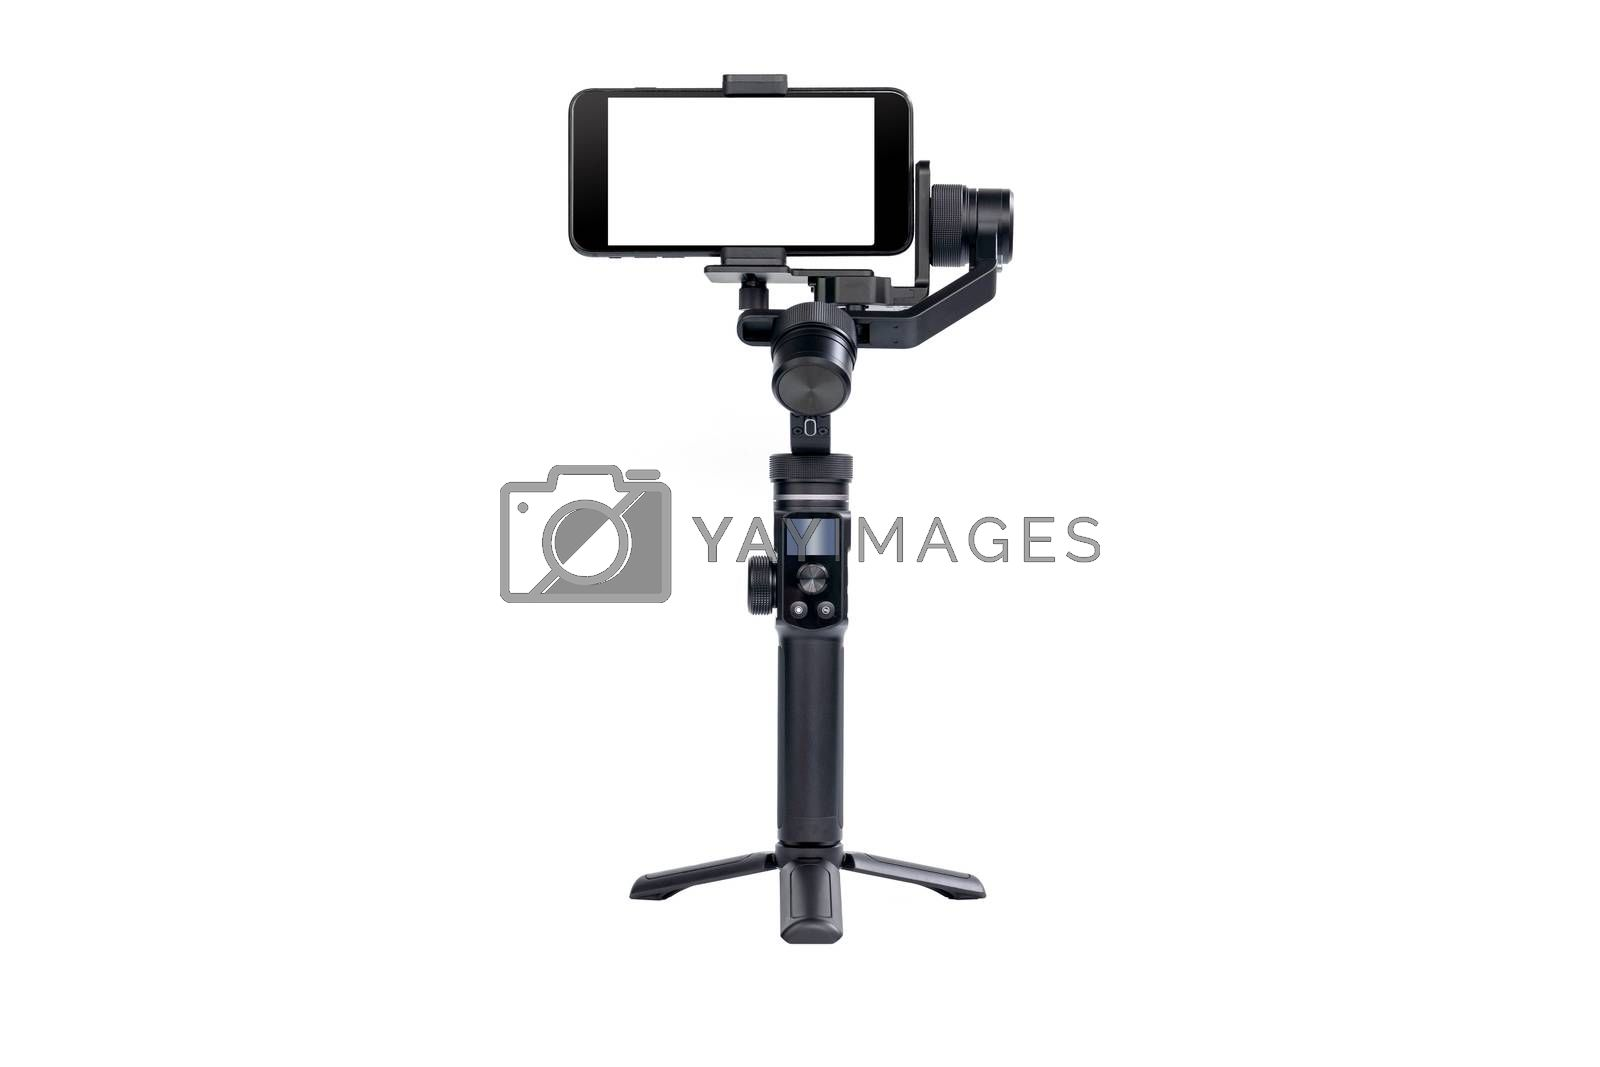 Mobile phone is mounted on a 3-axis motor stabilizer for smooth video recording isolated on white background.